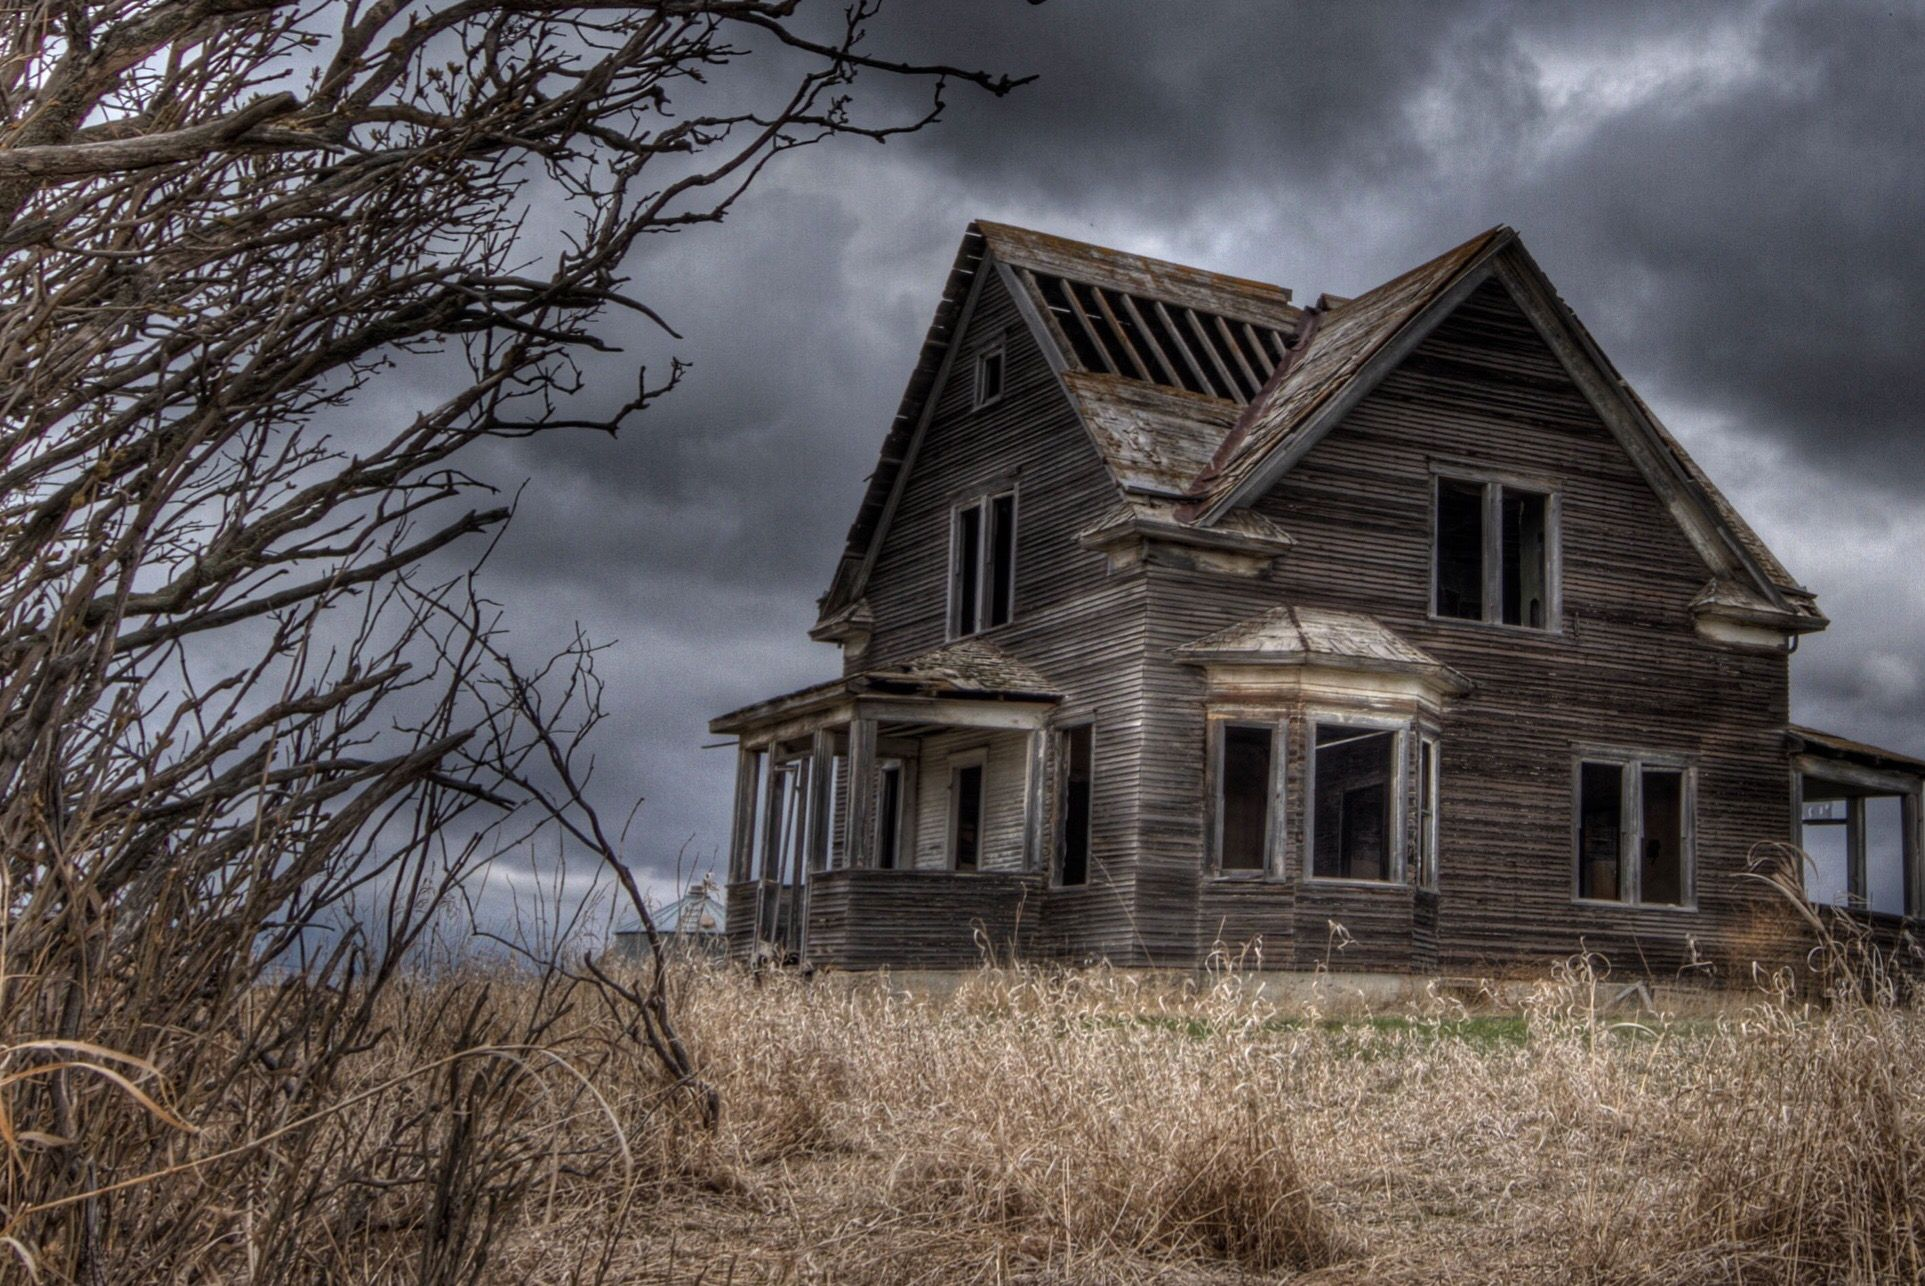 4 Haunted Houses and What They're Worth